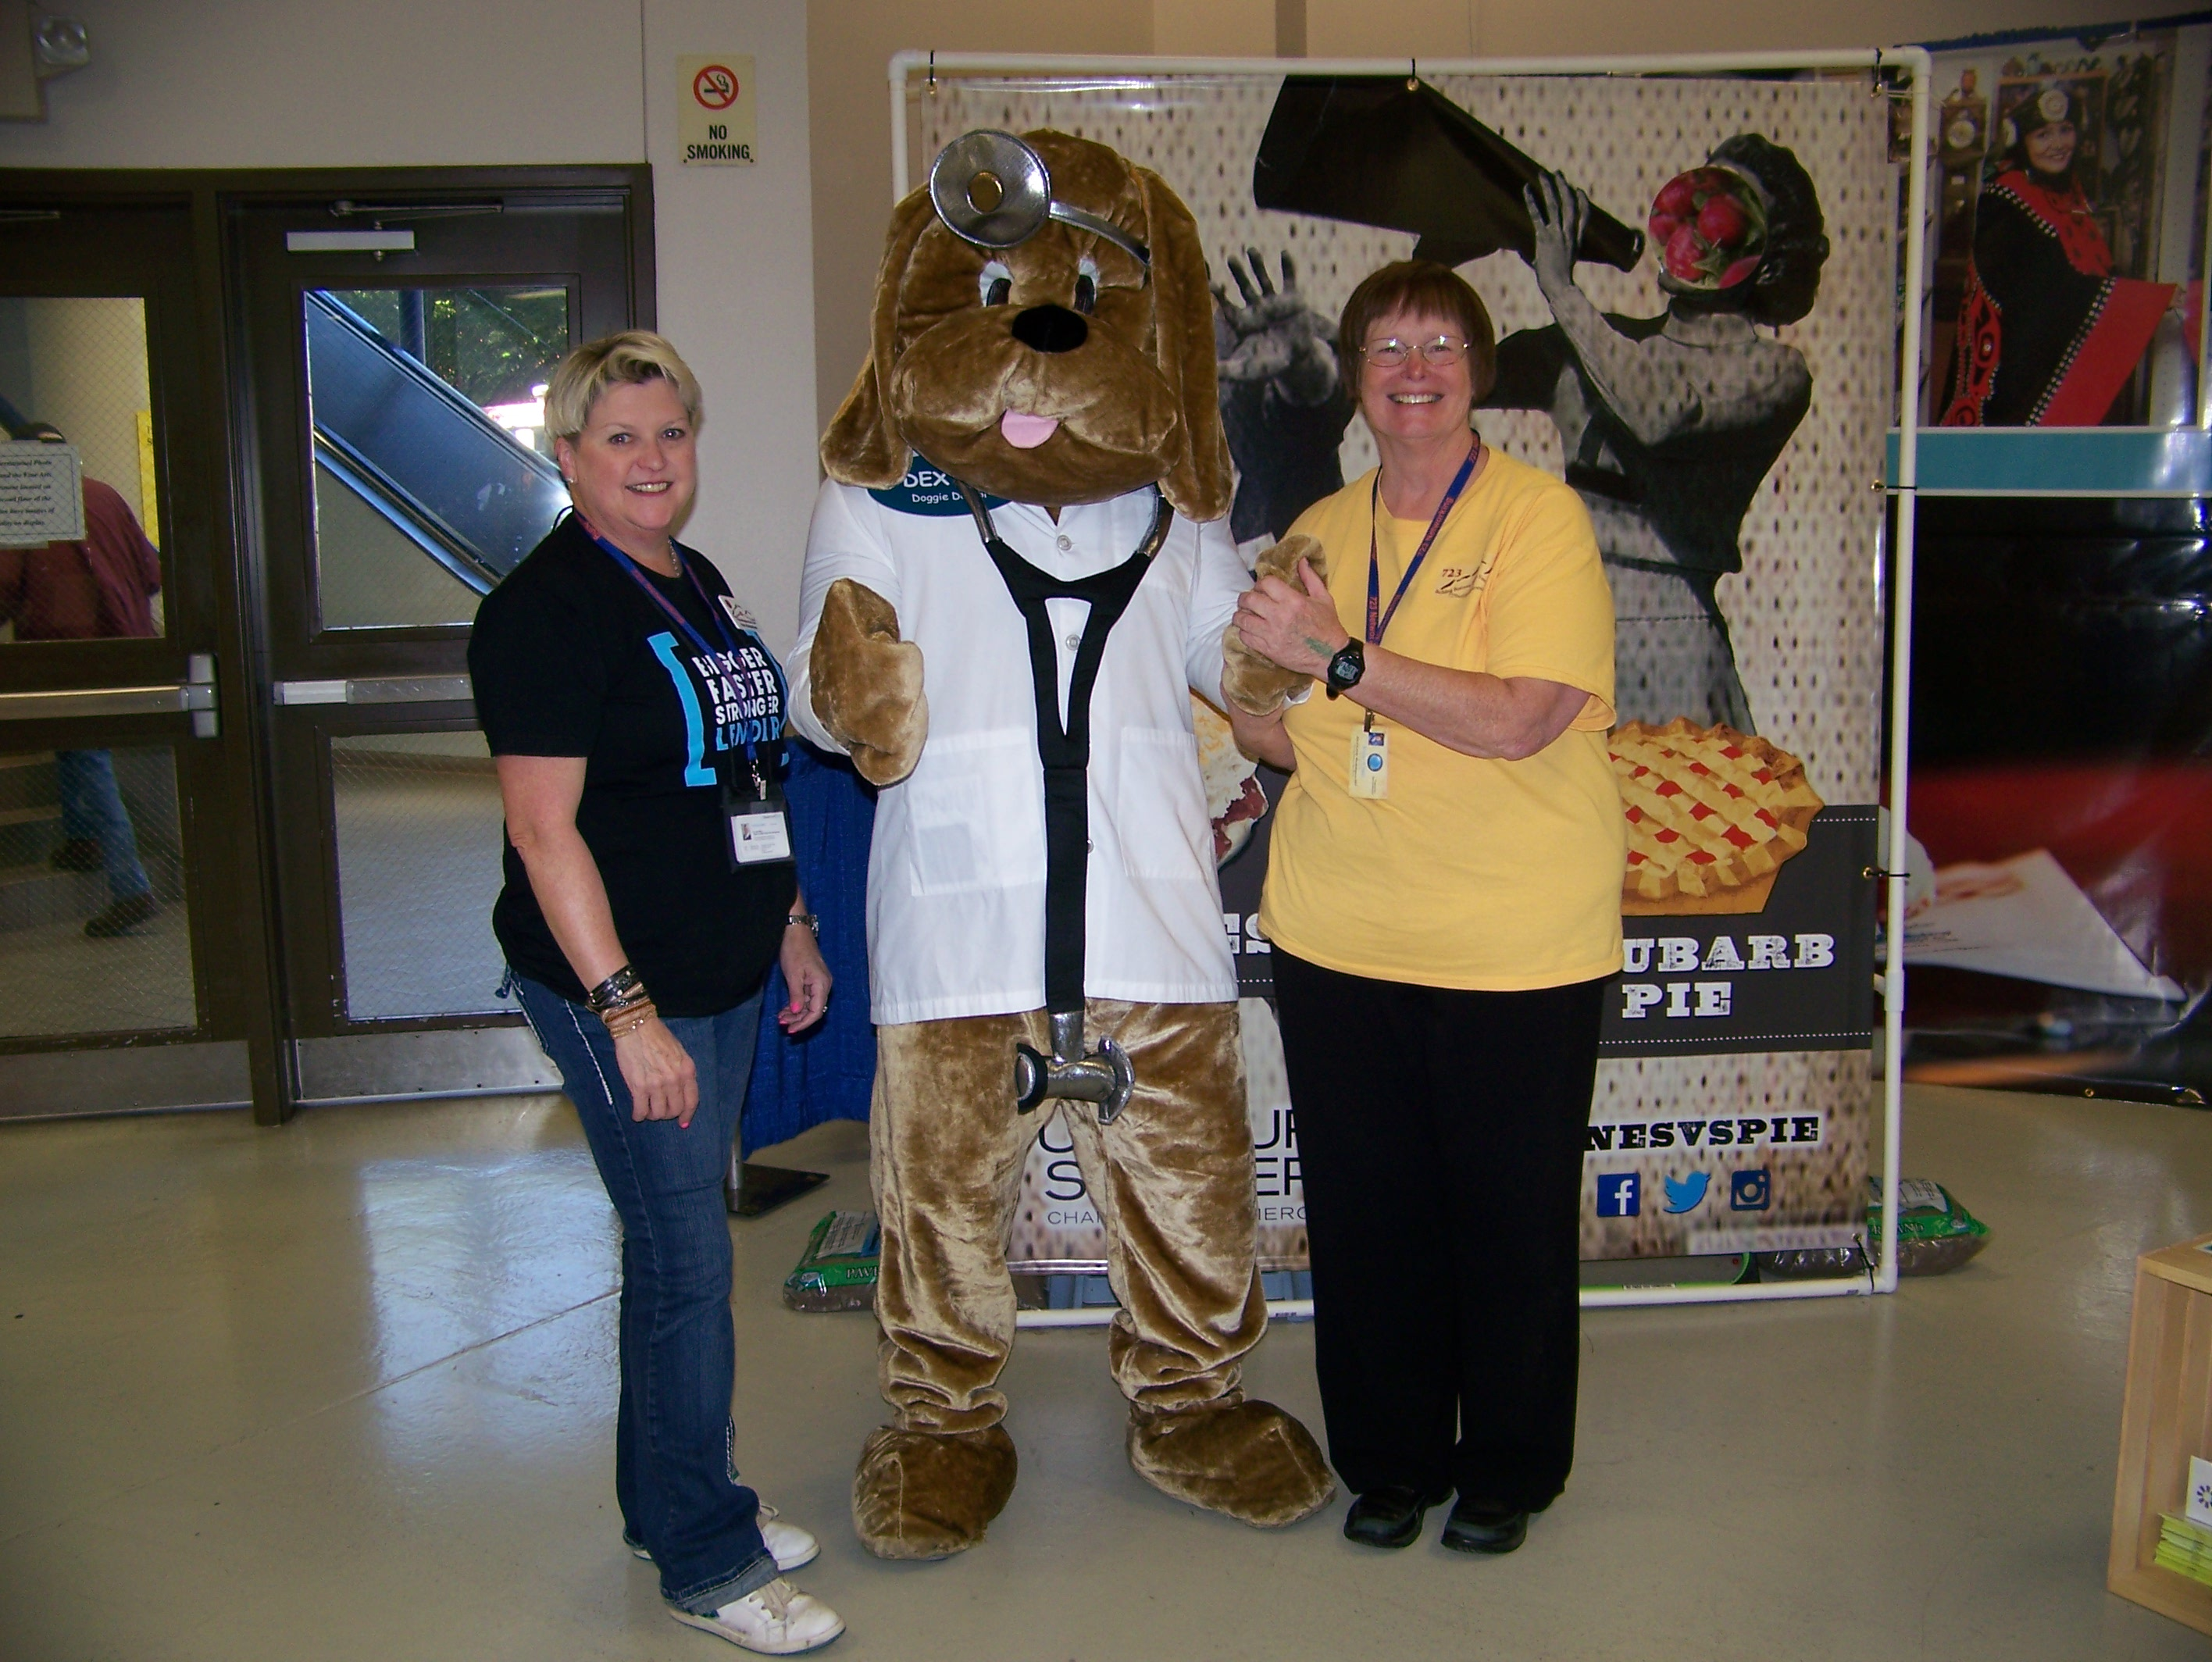 Pam Richardson and Kristine M Smith with Dr. Dawg at the Puyallup Fair